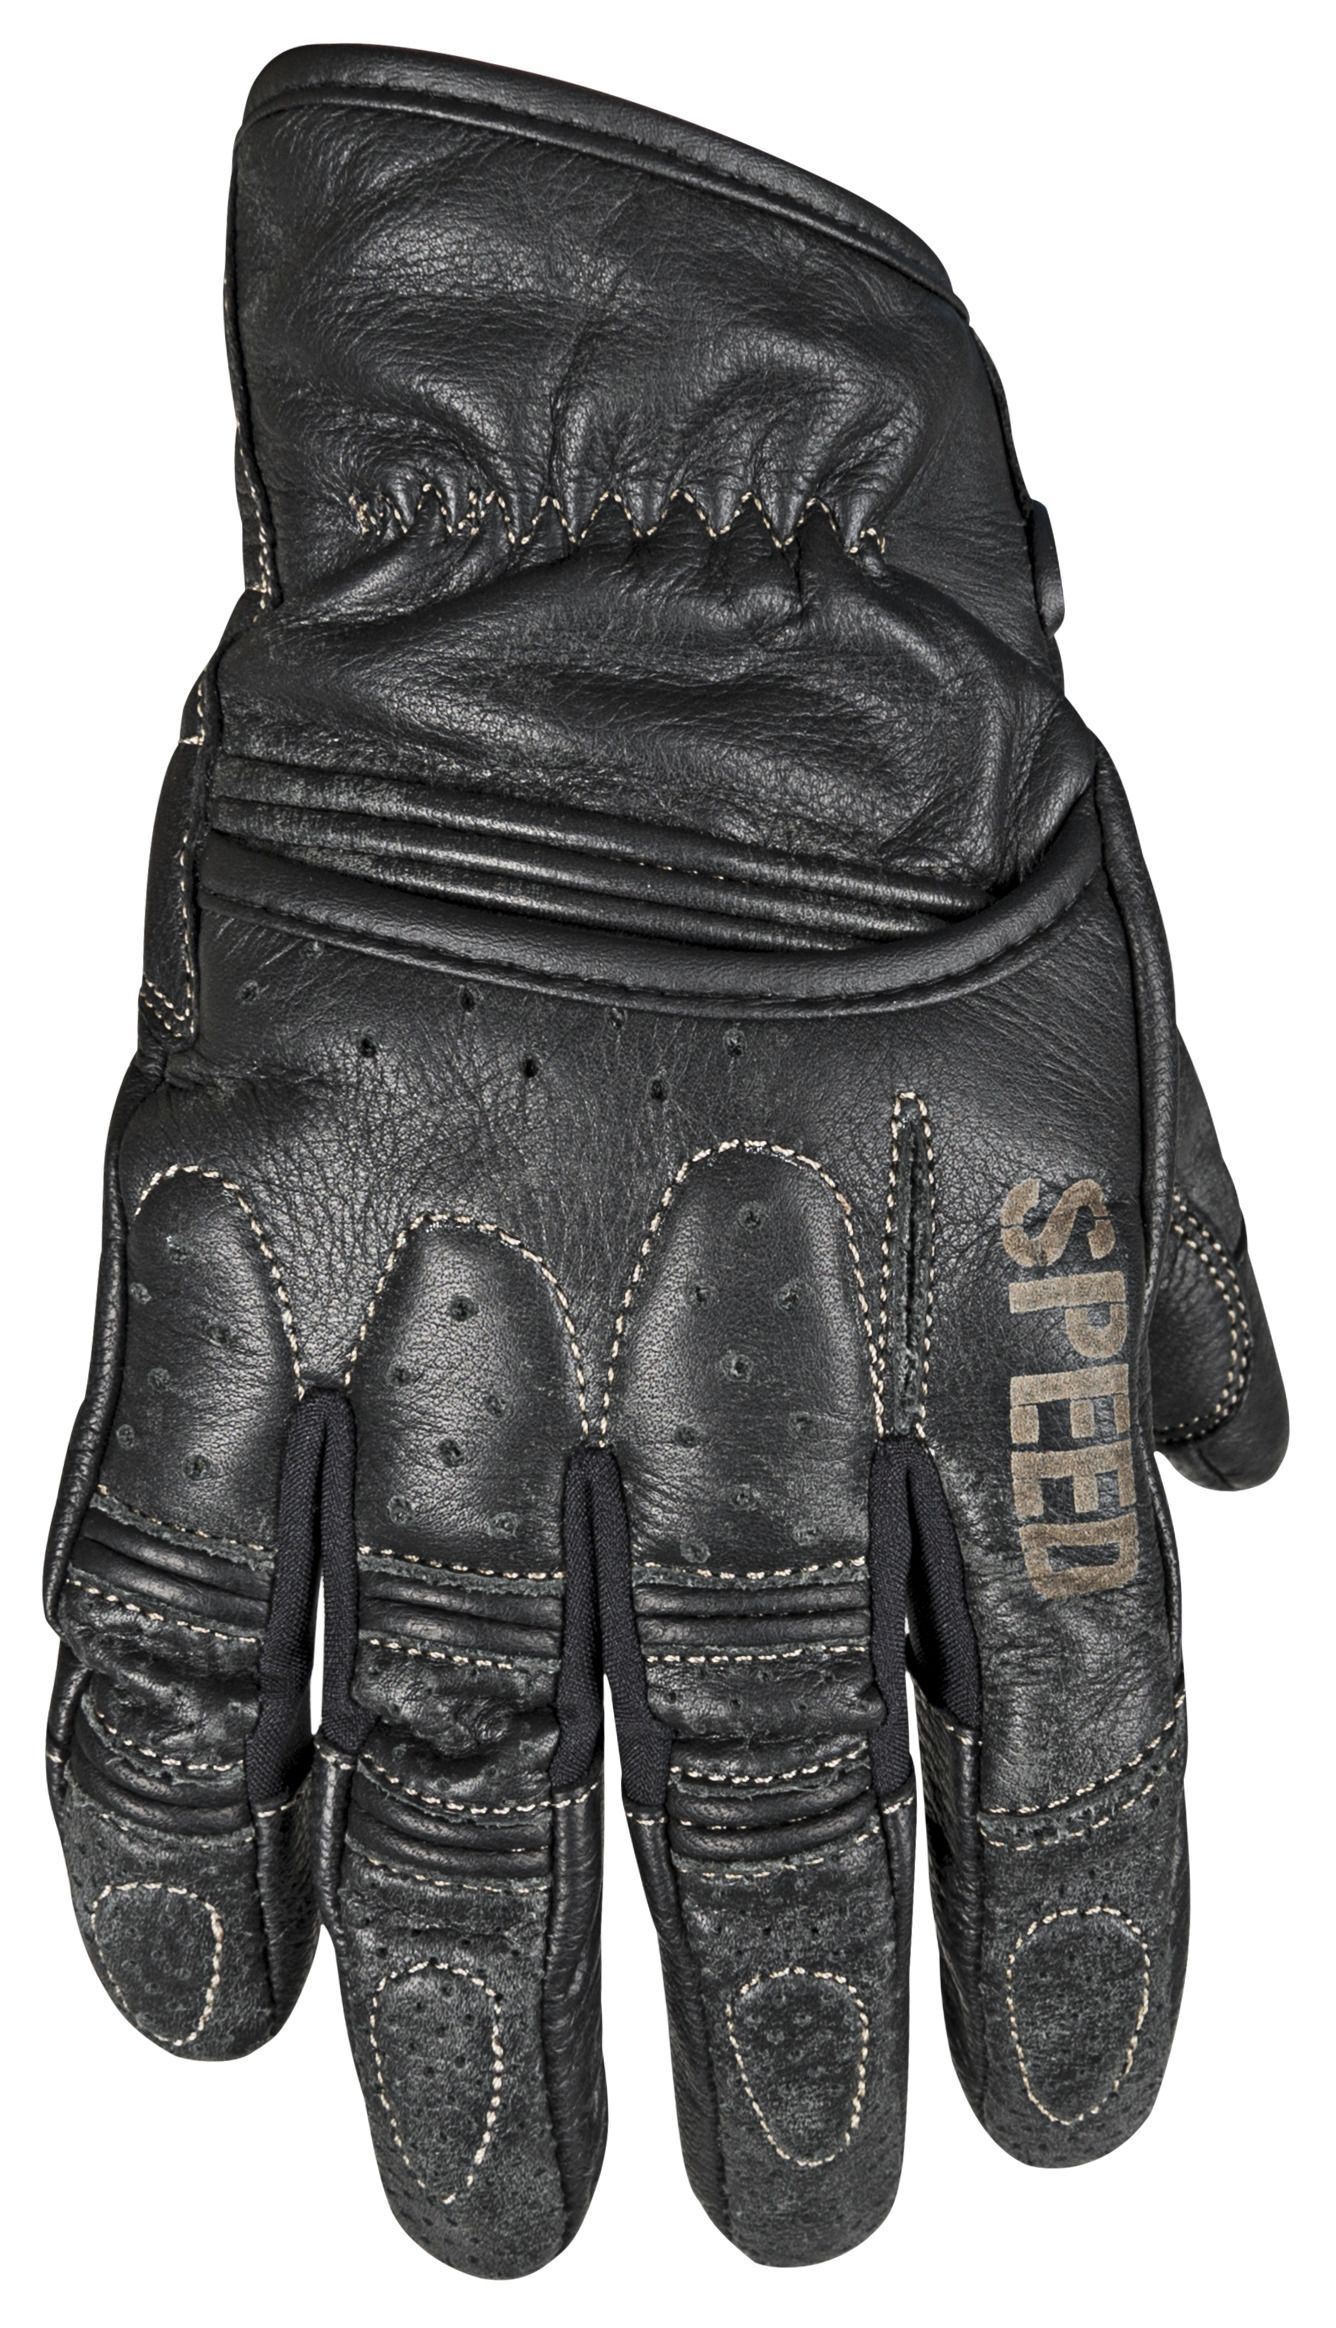 Buy leather motorcycle gloves - Buy Leather Motorcycle Gloves 29